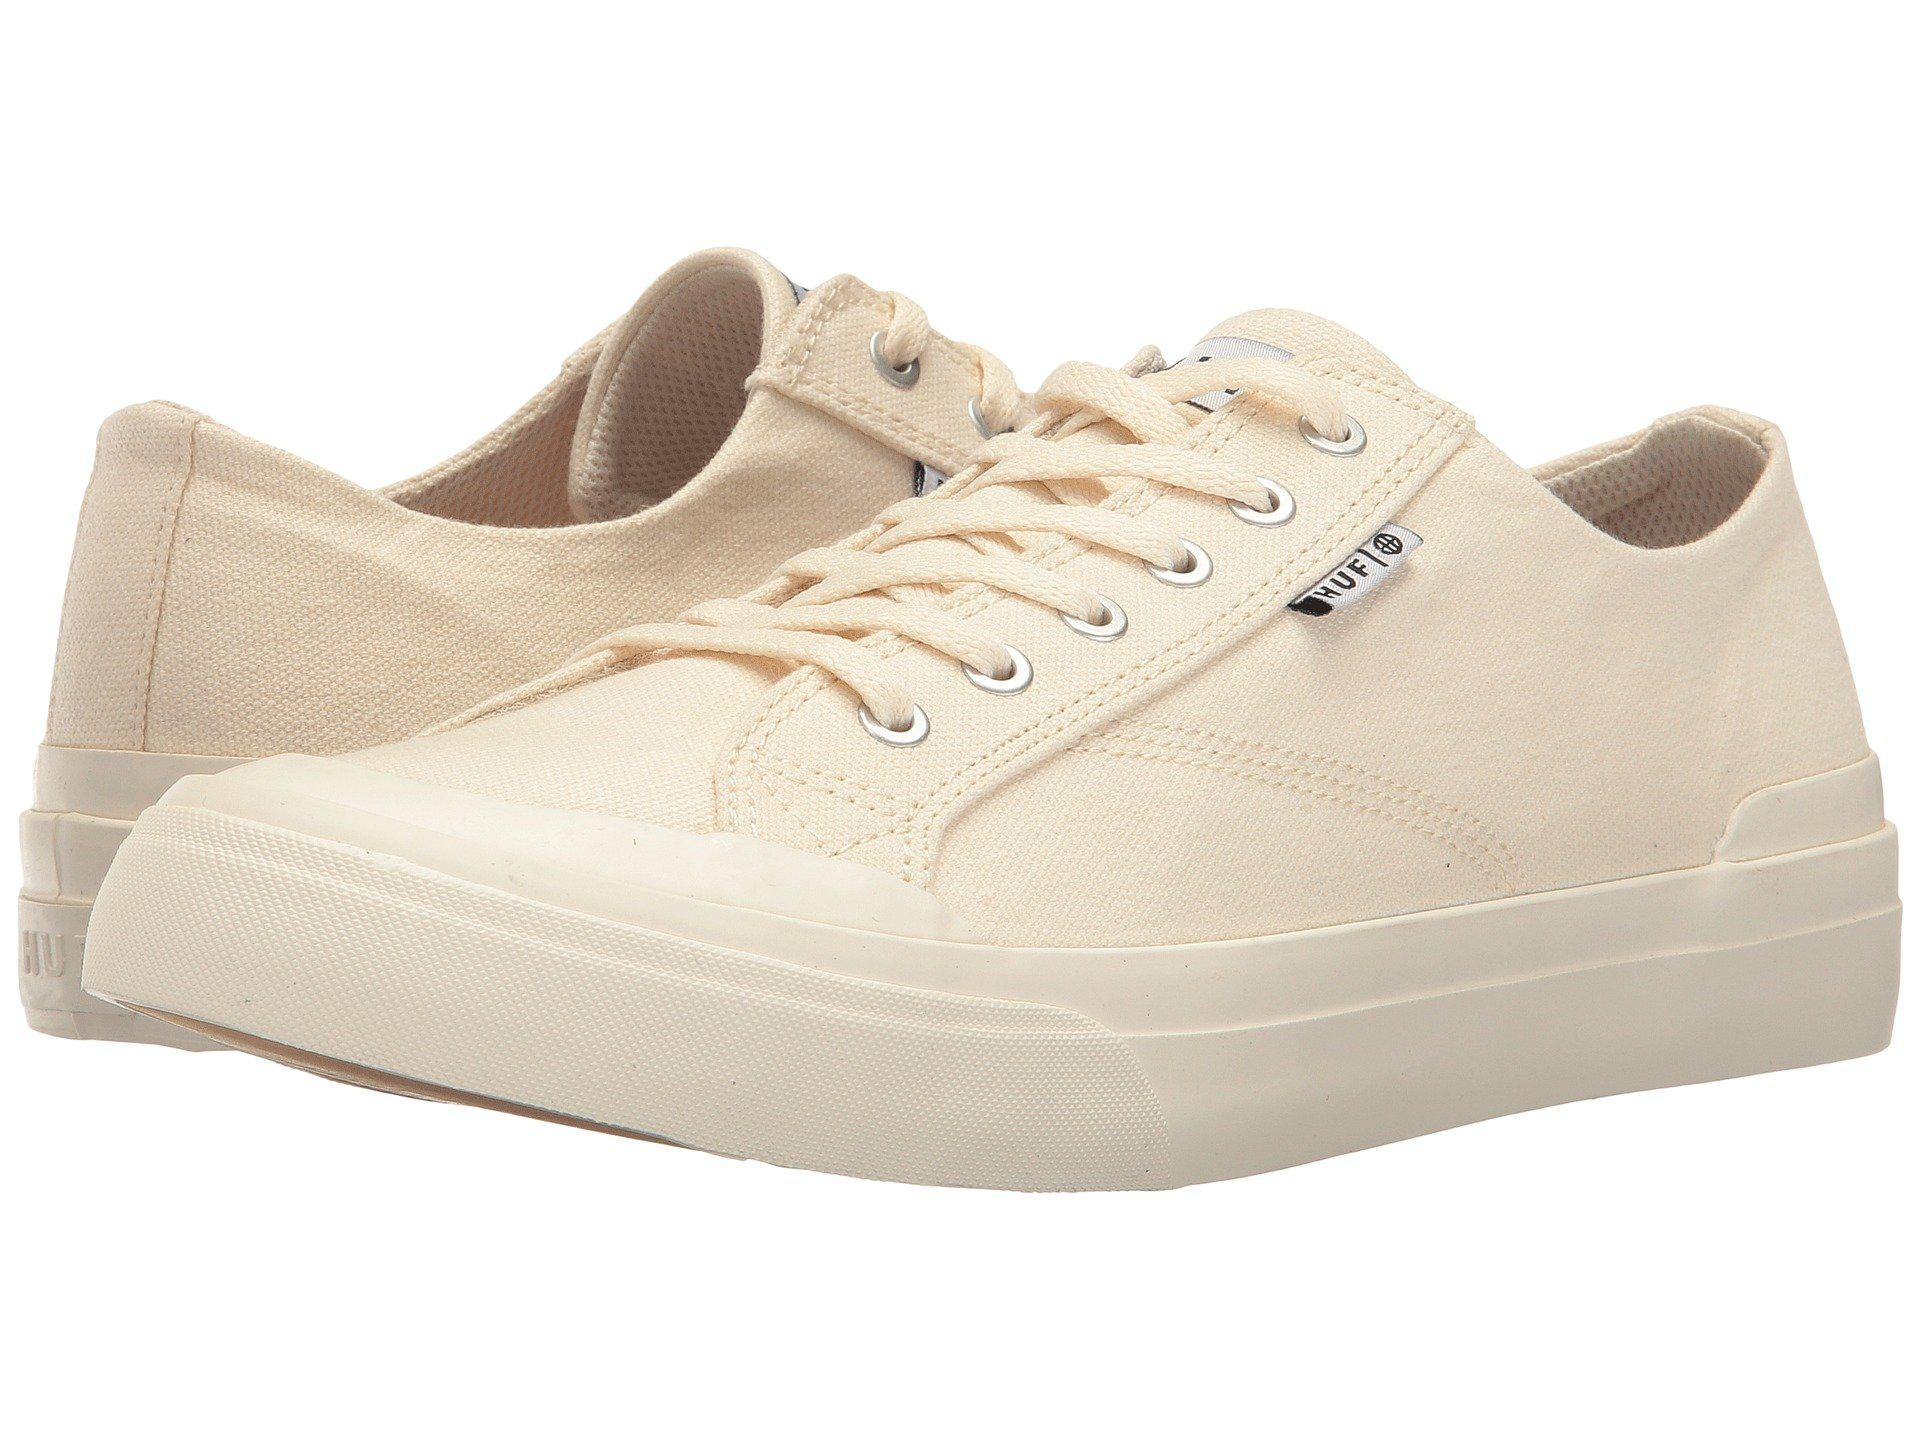 6f26d42db1f1 Lyst - Huf Classic Lo Ess Tx in Natural for Men